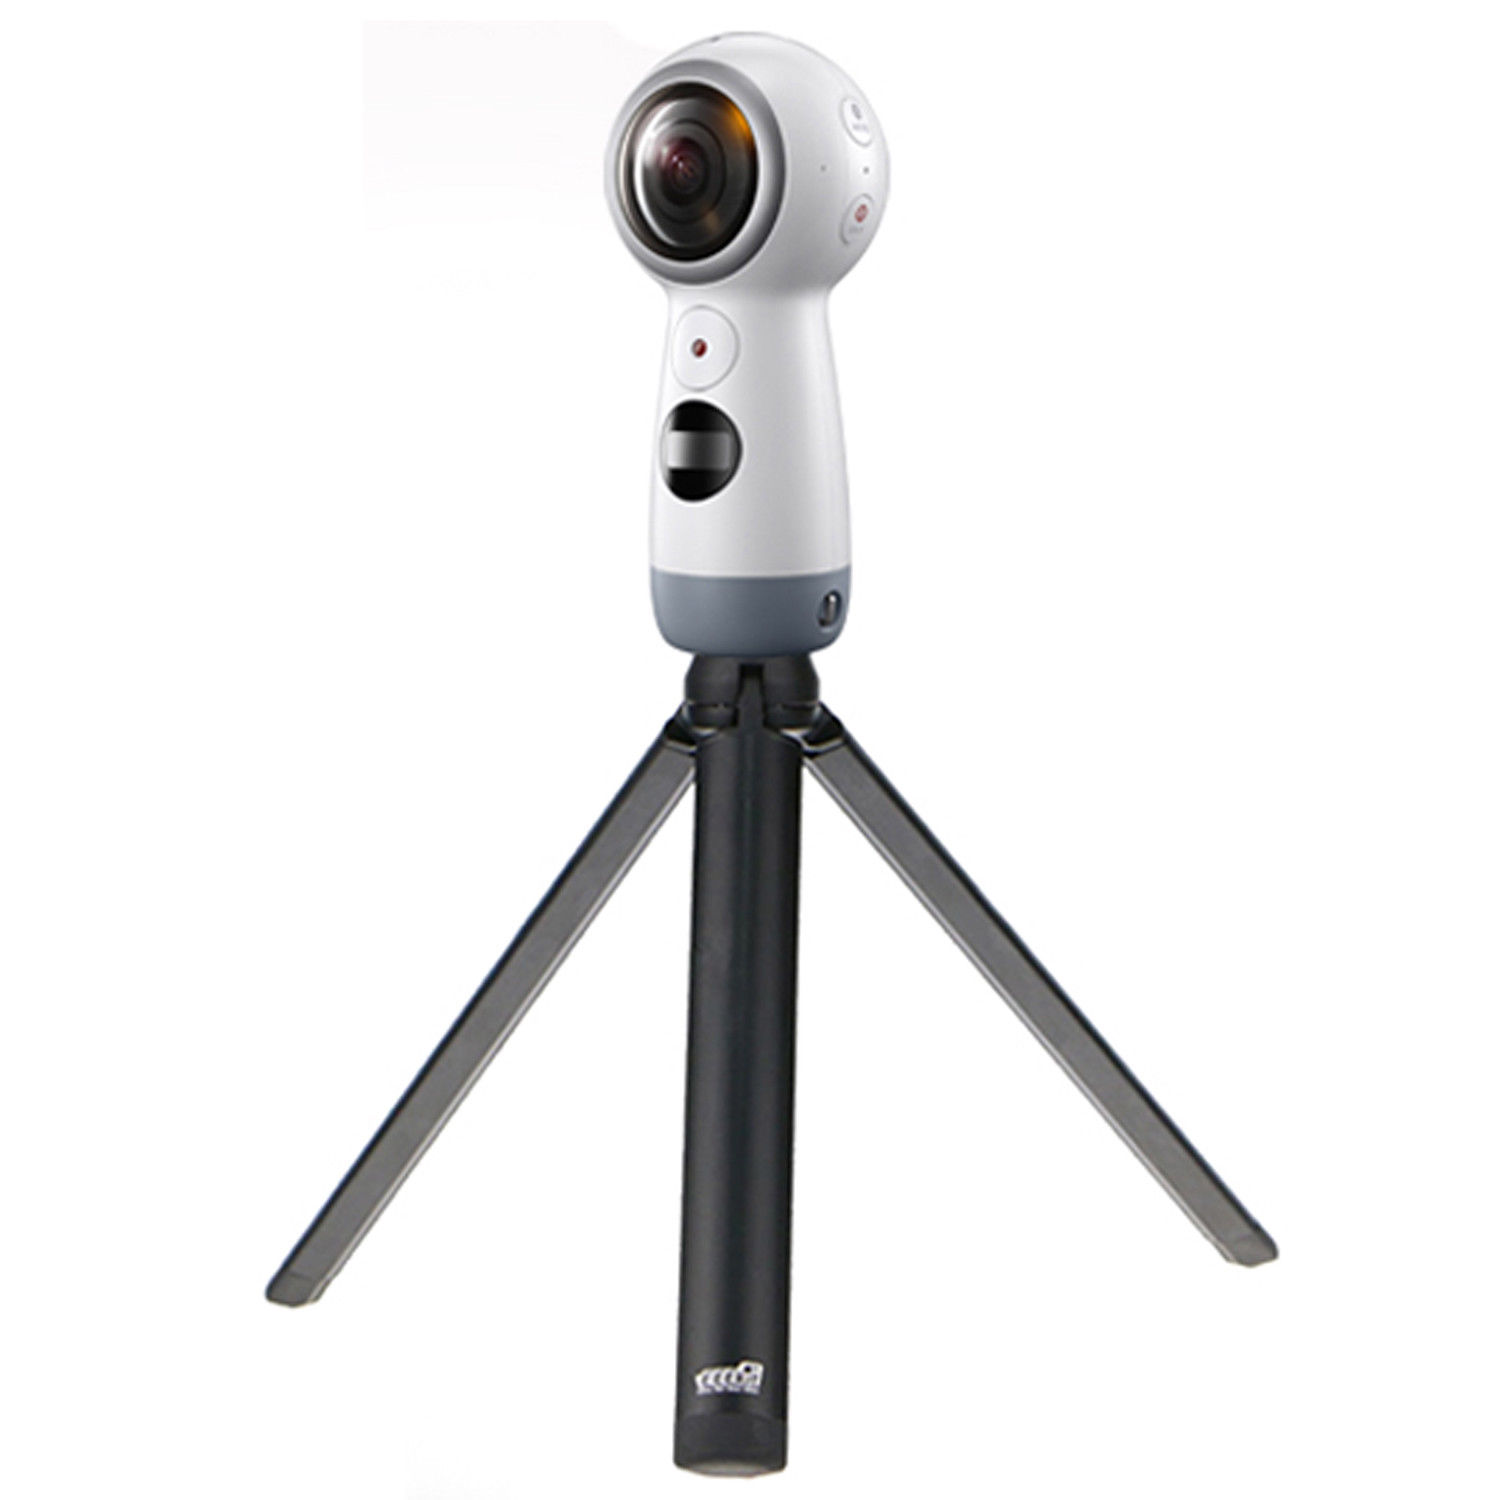 eeekit mini portable lightweight tripod stand holder for samsung gear 360 camera ebay. Black Bedroom Furniture Sets. Home Design Ideas